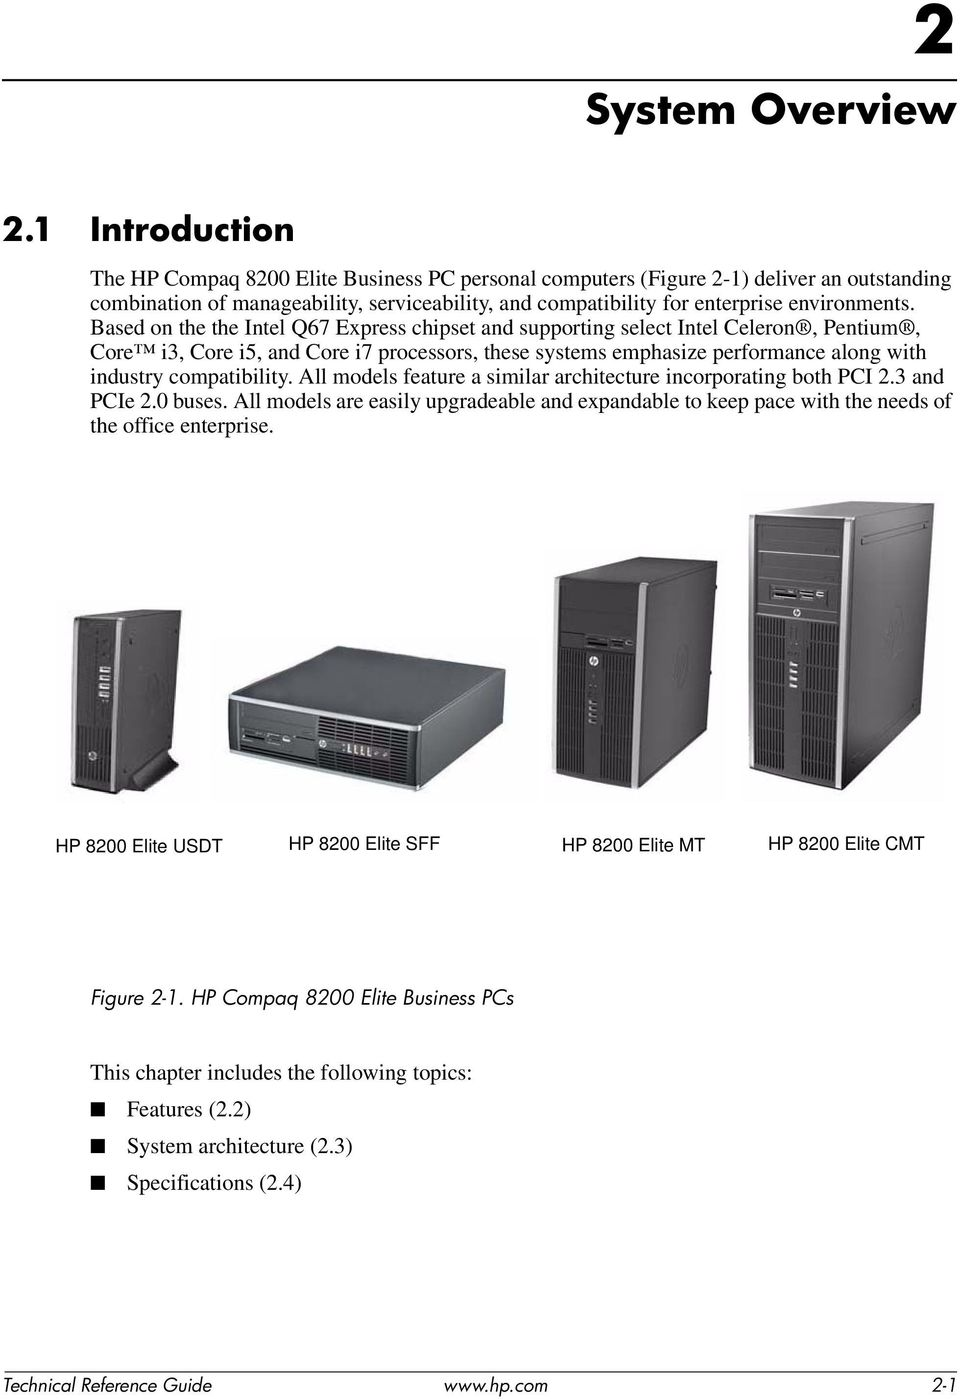 Technical Reference Guide HP Compaq 8200 Elite Series Business